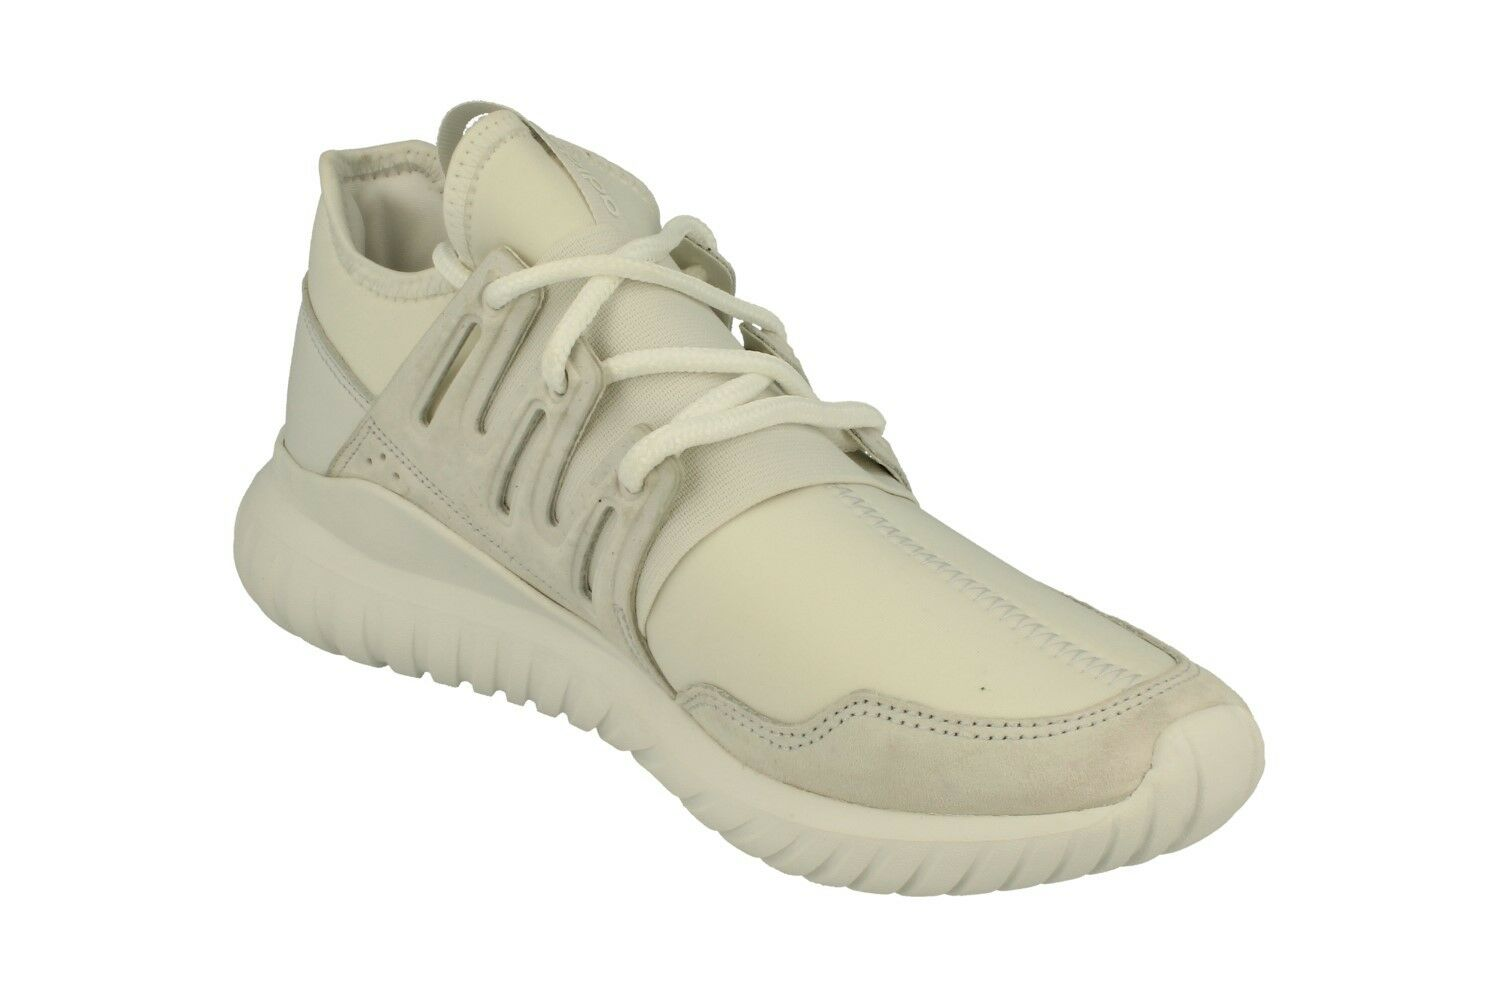 Adidas Originals Tubular Radial Mens Trainers Sneakers AQ6722